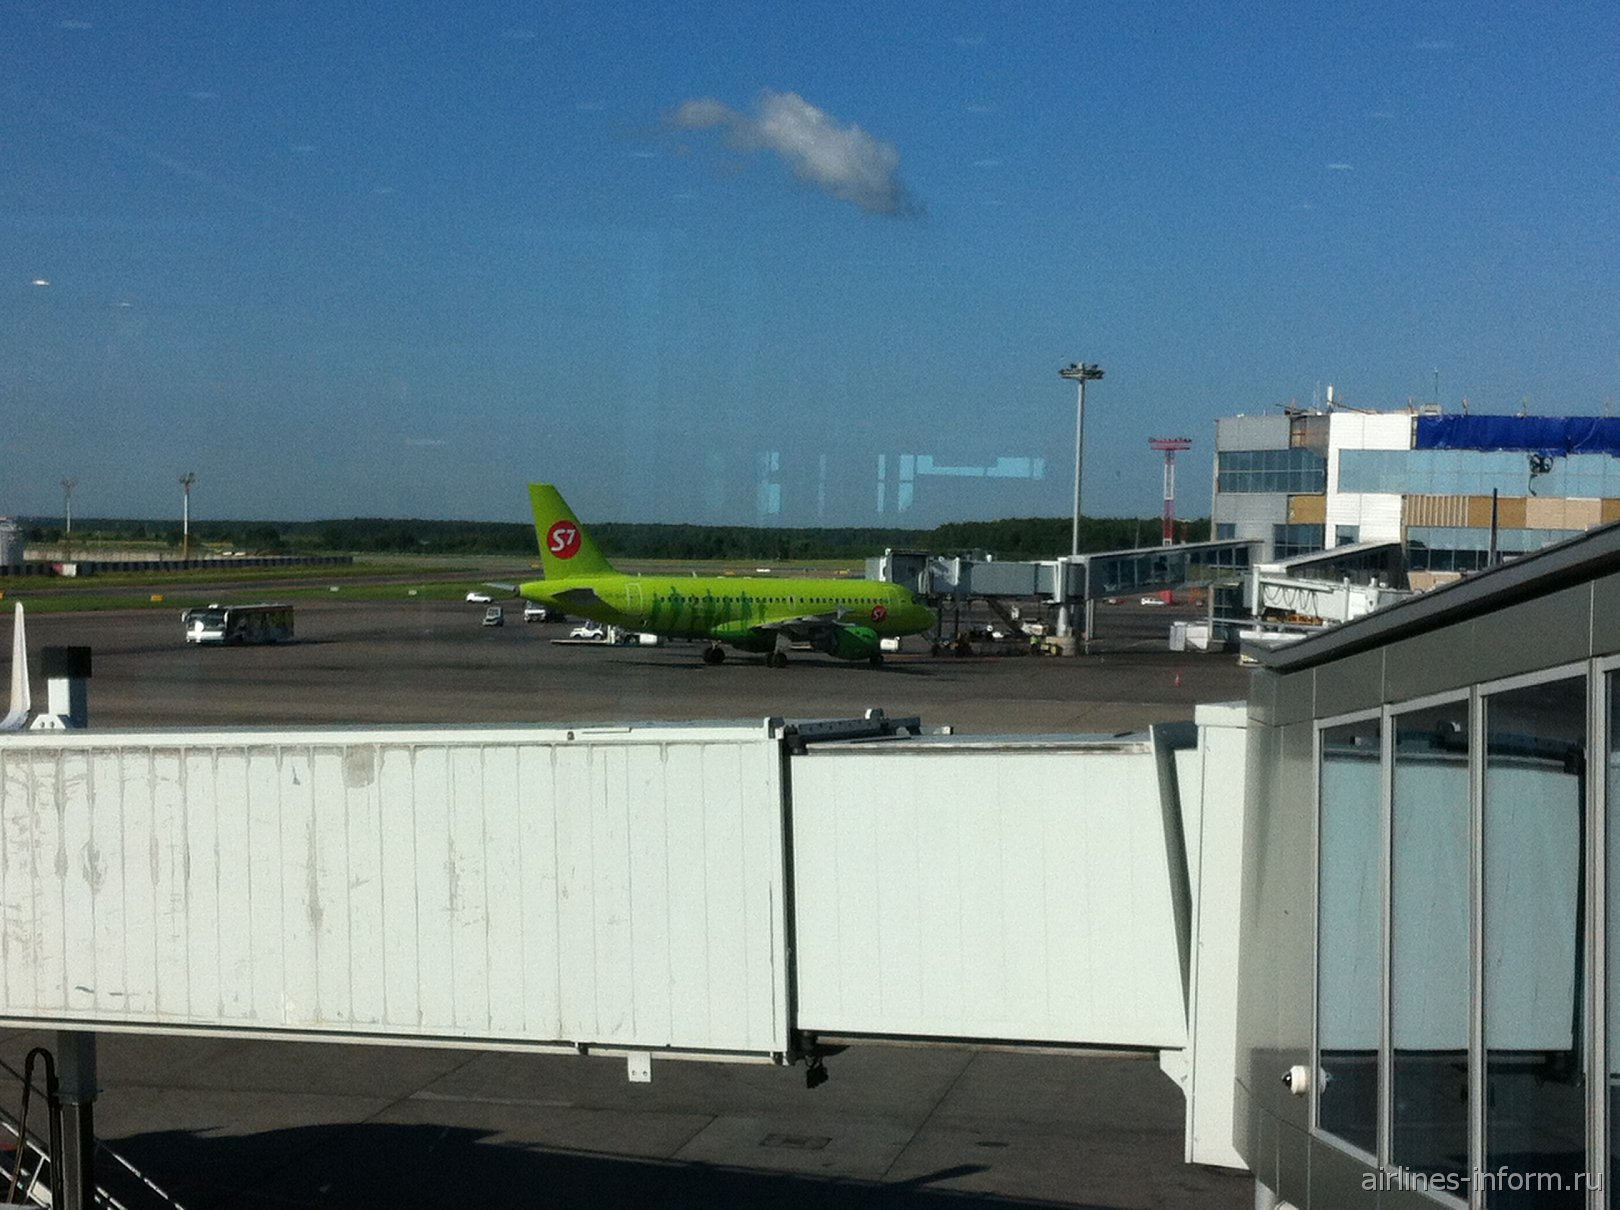 A319 S7 Airlines